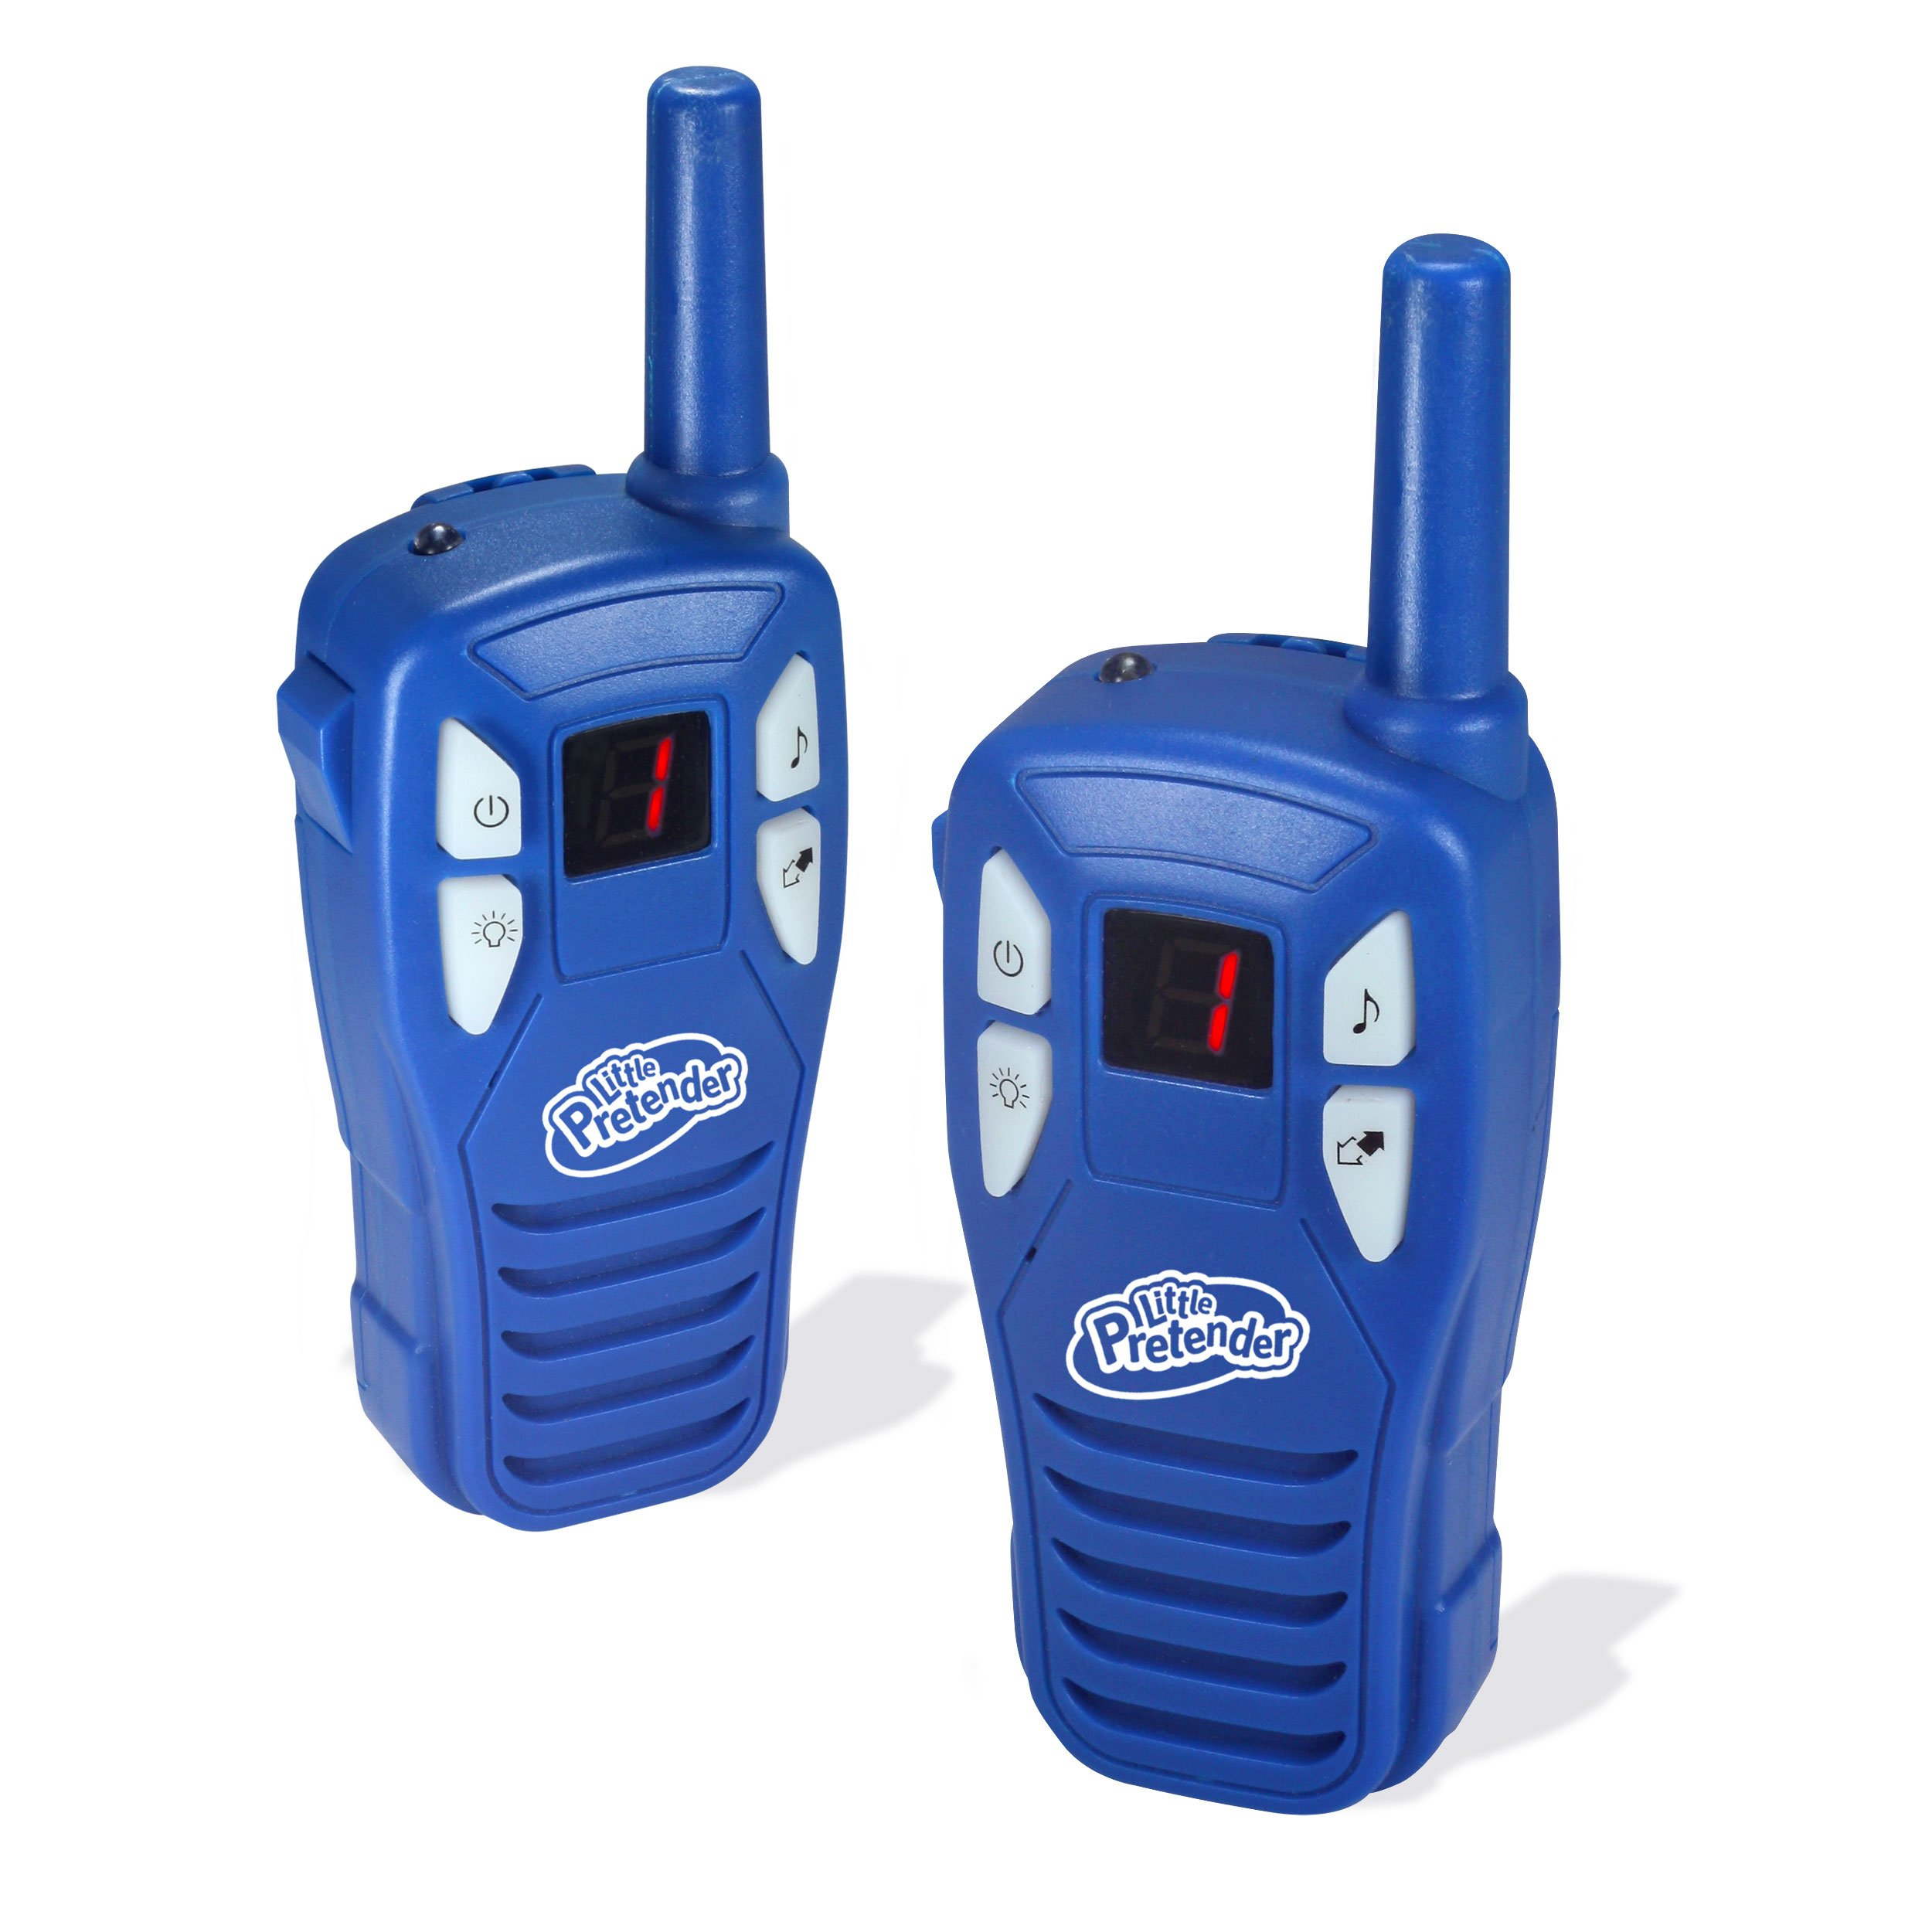 Little Pretender Walkie Talkies Kids, 2 Mile Range, 3 Channels, Built in Flash Light